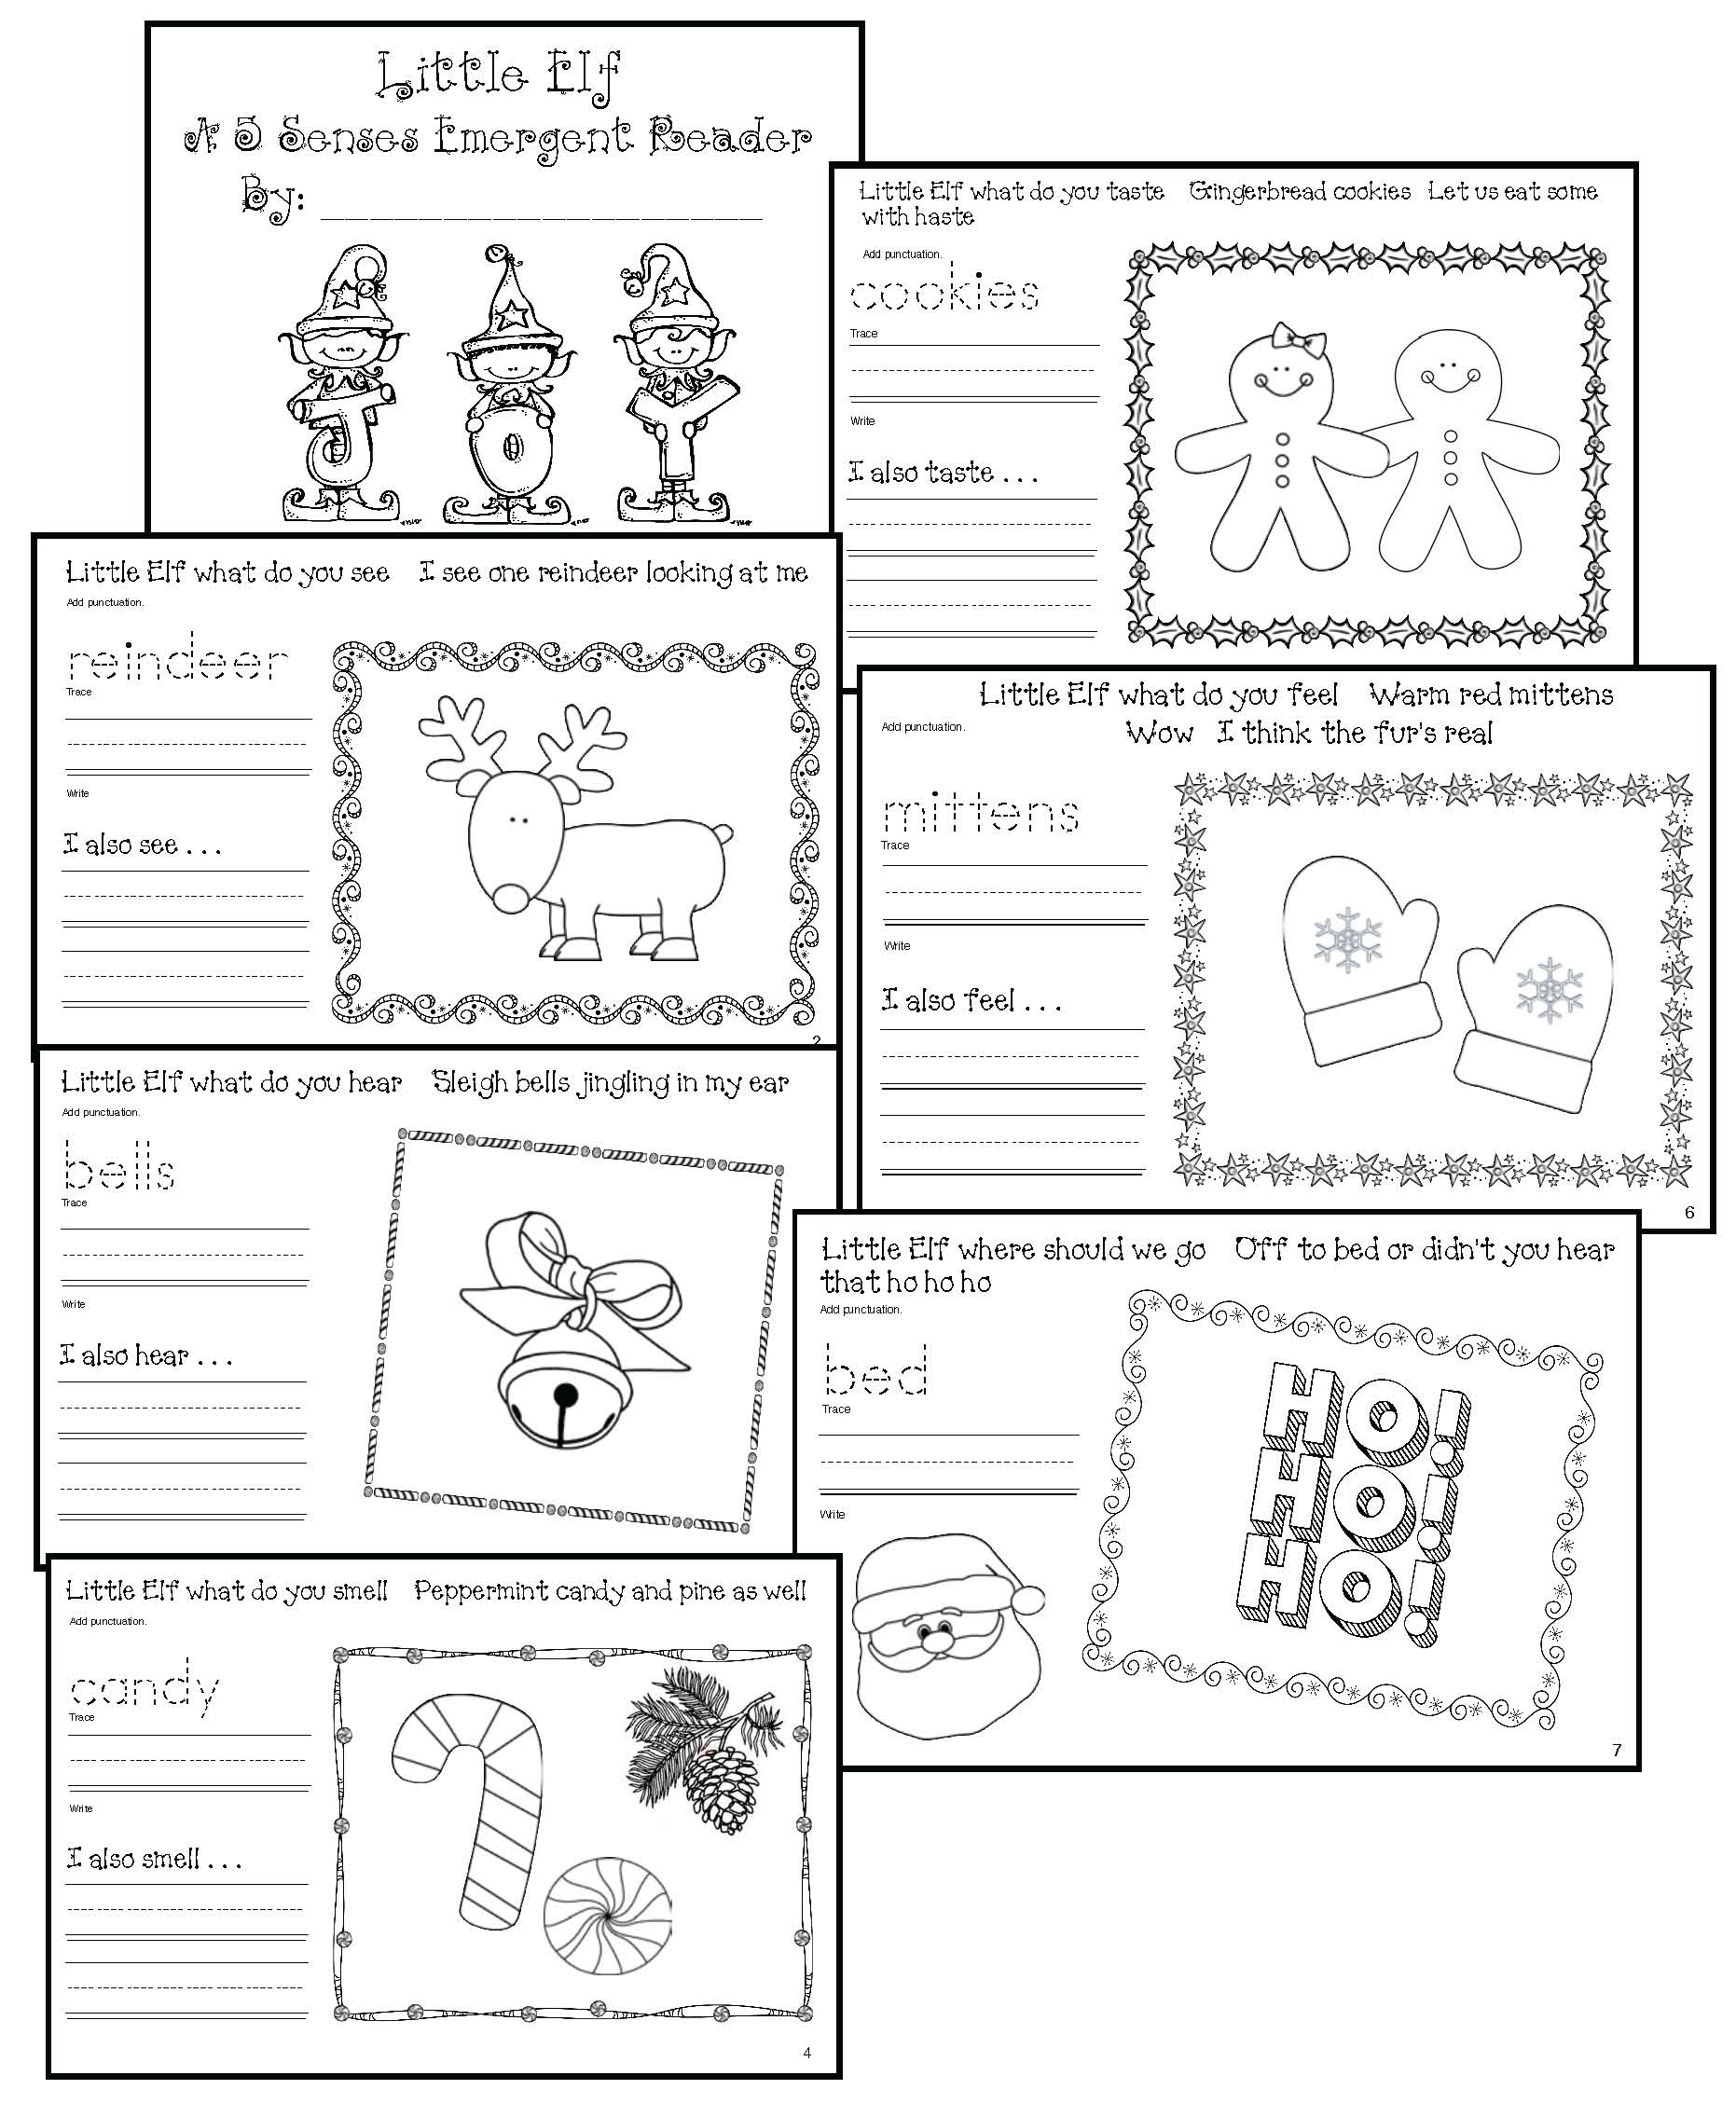 elf activities, elf on a shelf activities, label the elf, elf emergent reader, graphing activities, end punctuation activities